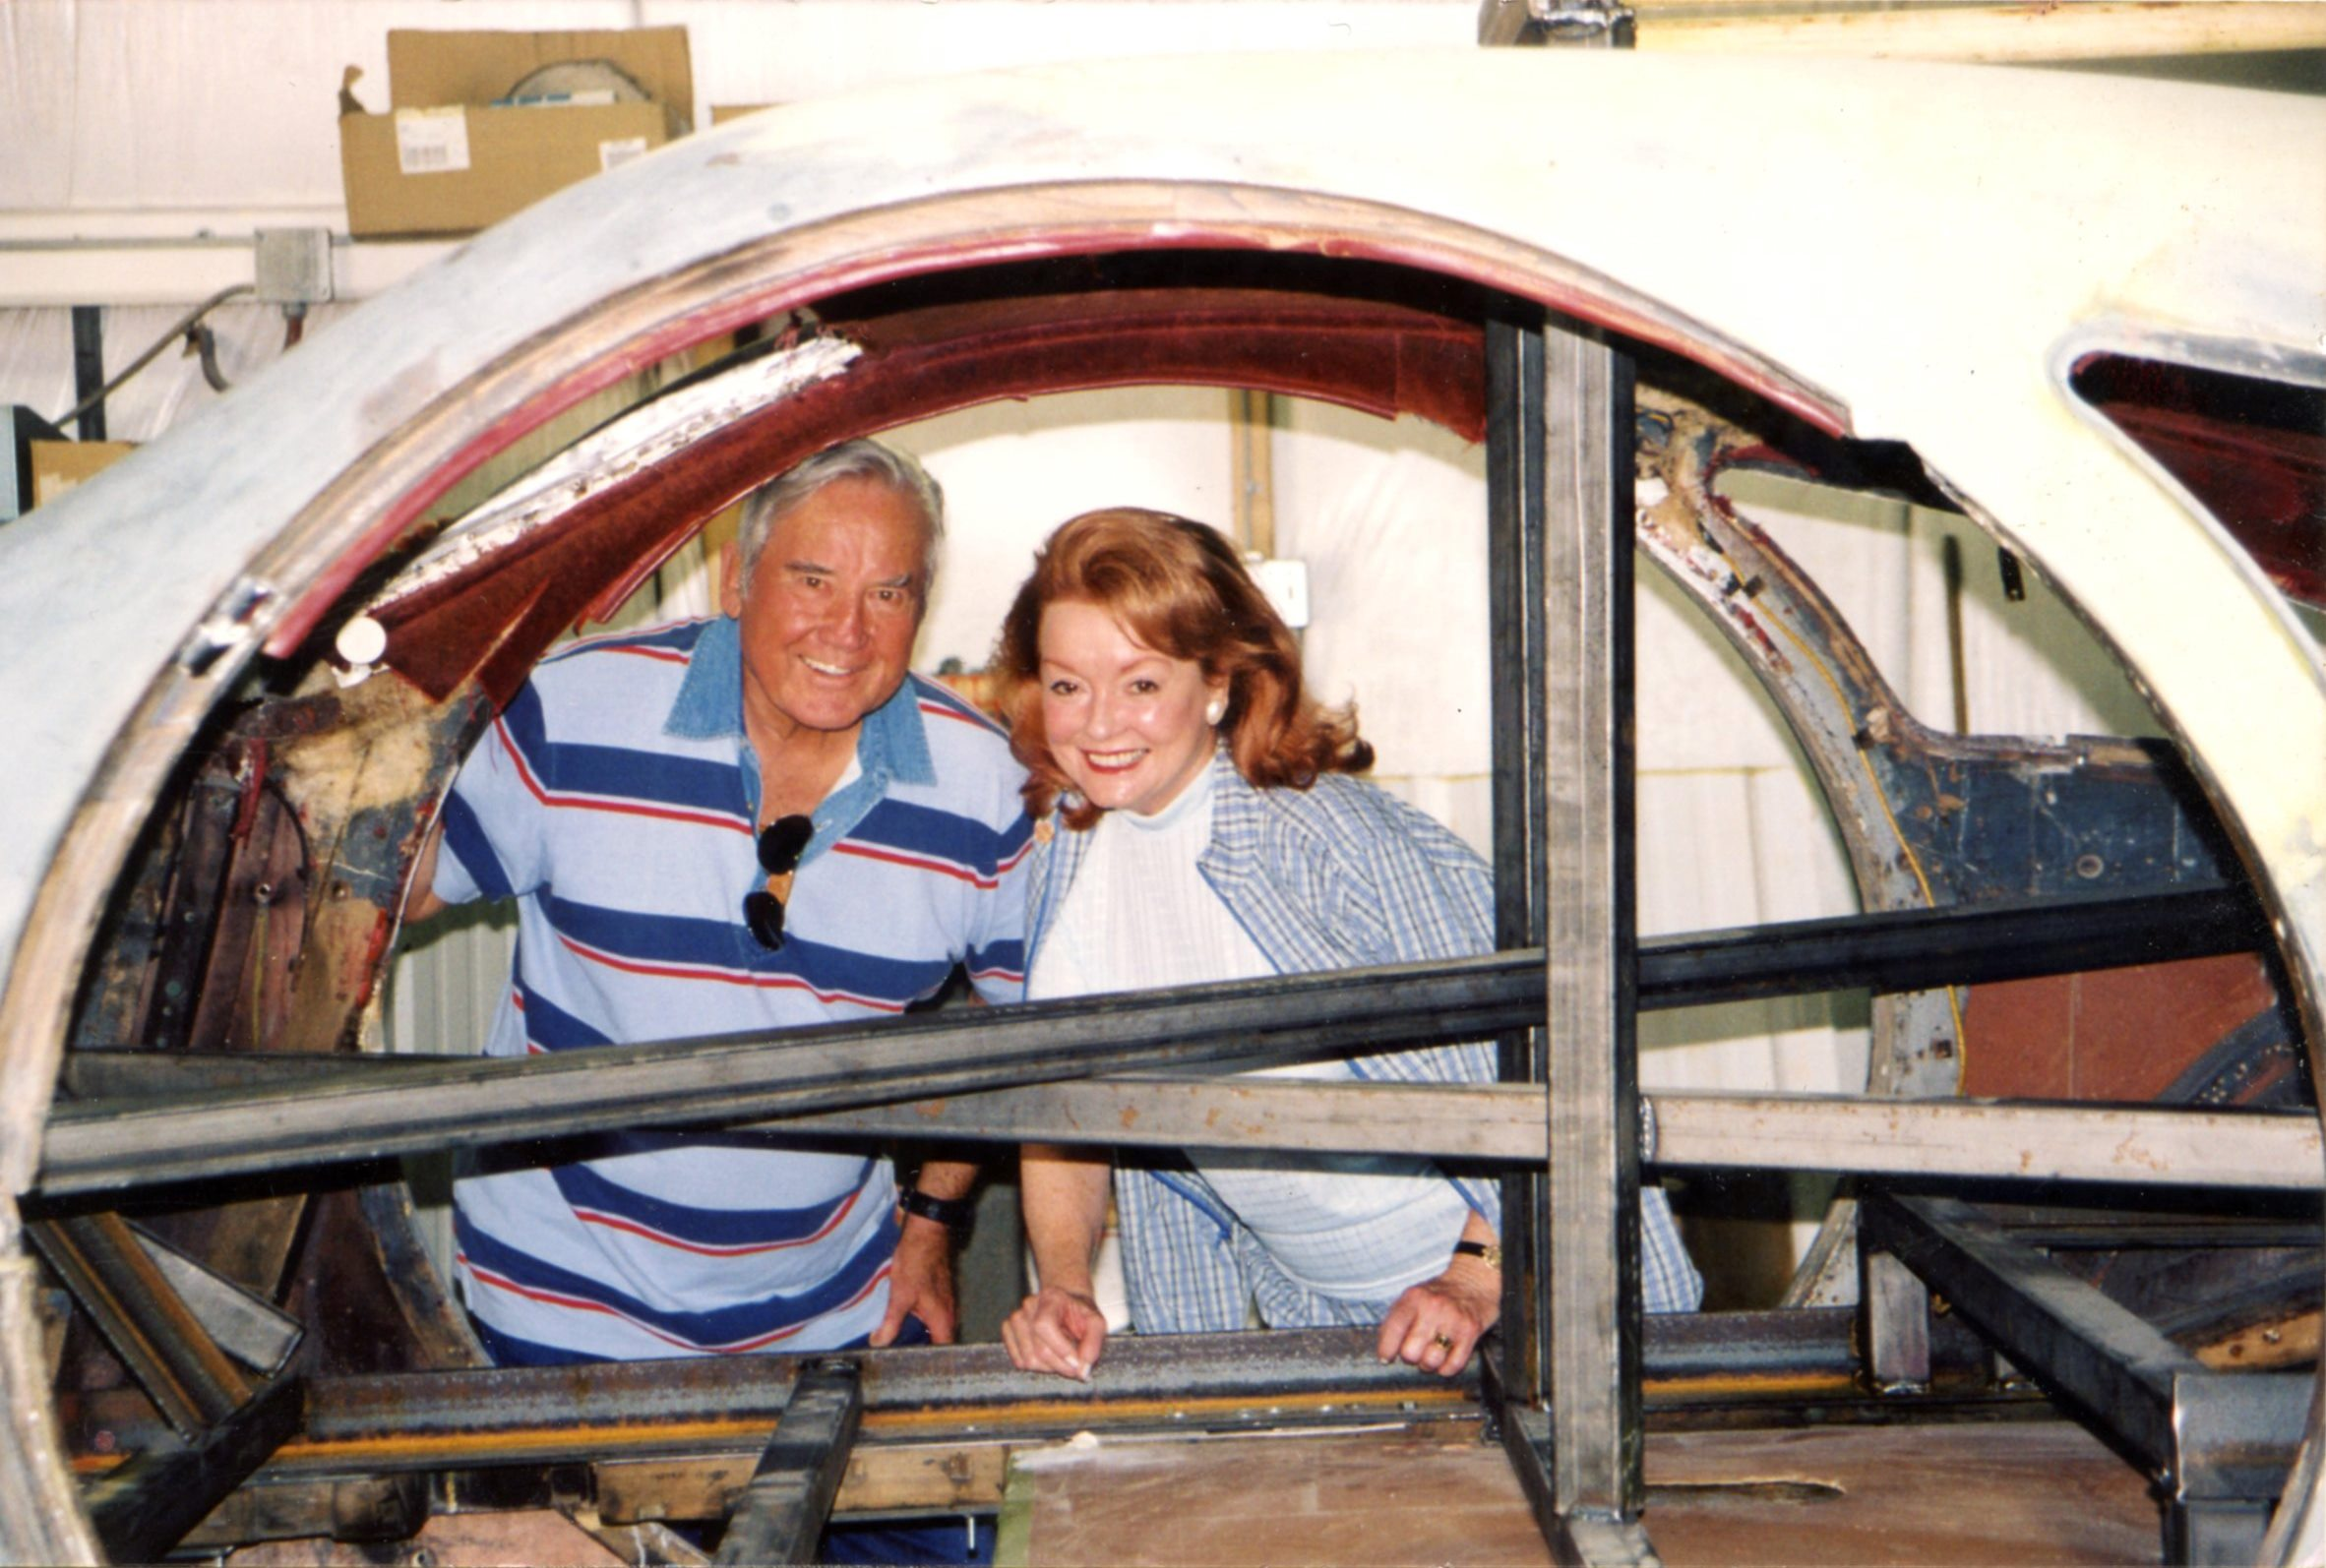 Robert E Petersen and his wife Margie smiling during the restoration of the Round Door Rolls Royce.